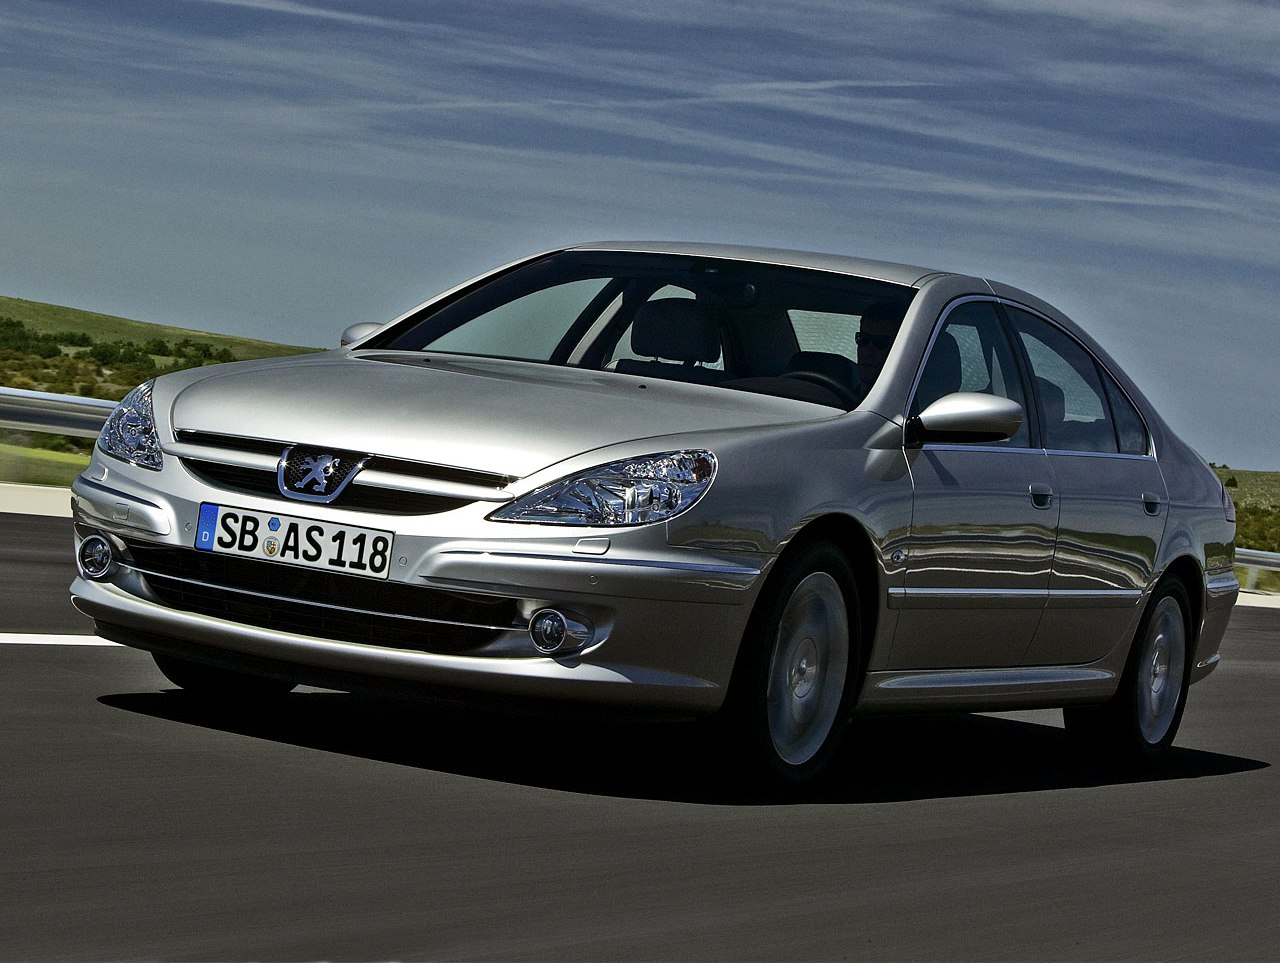 Pictures of peugeot 607 2013 #6